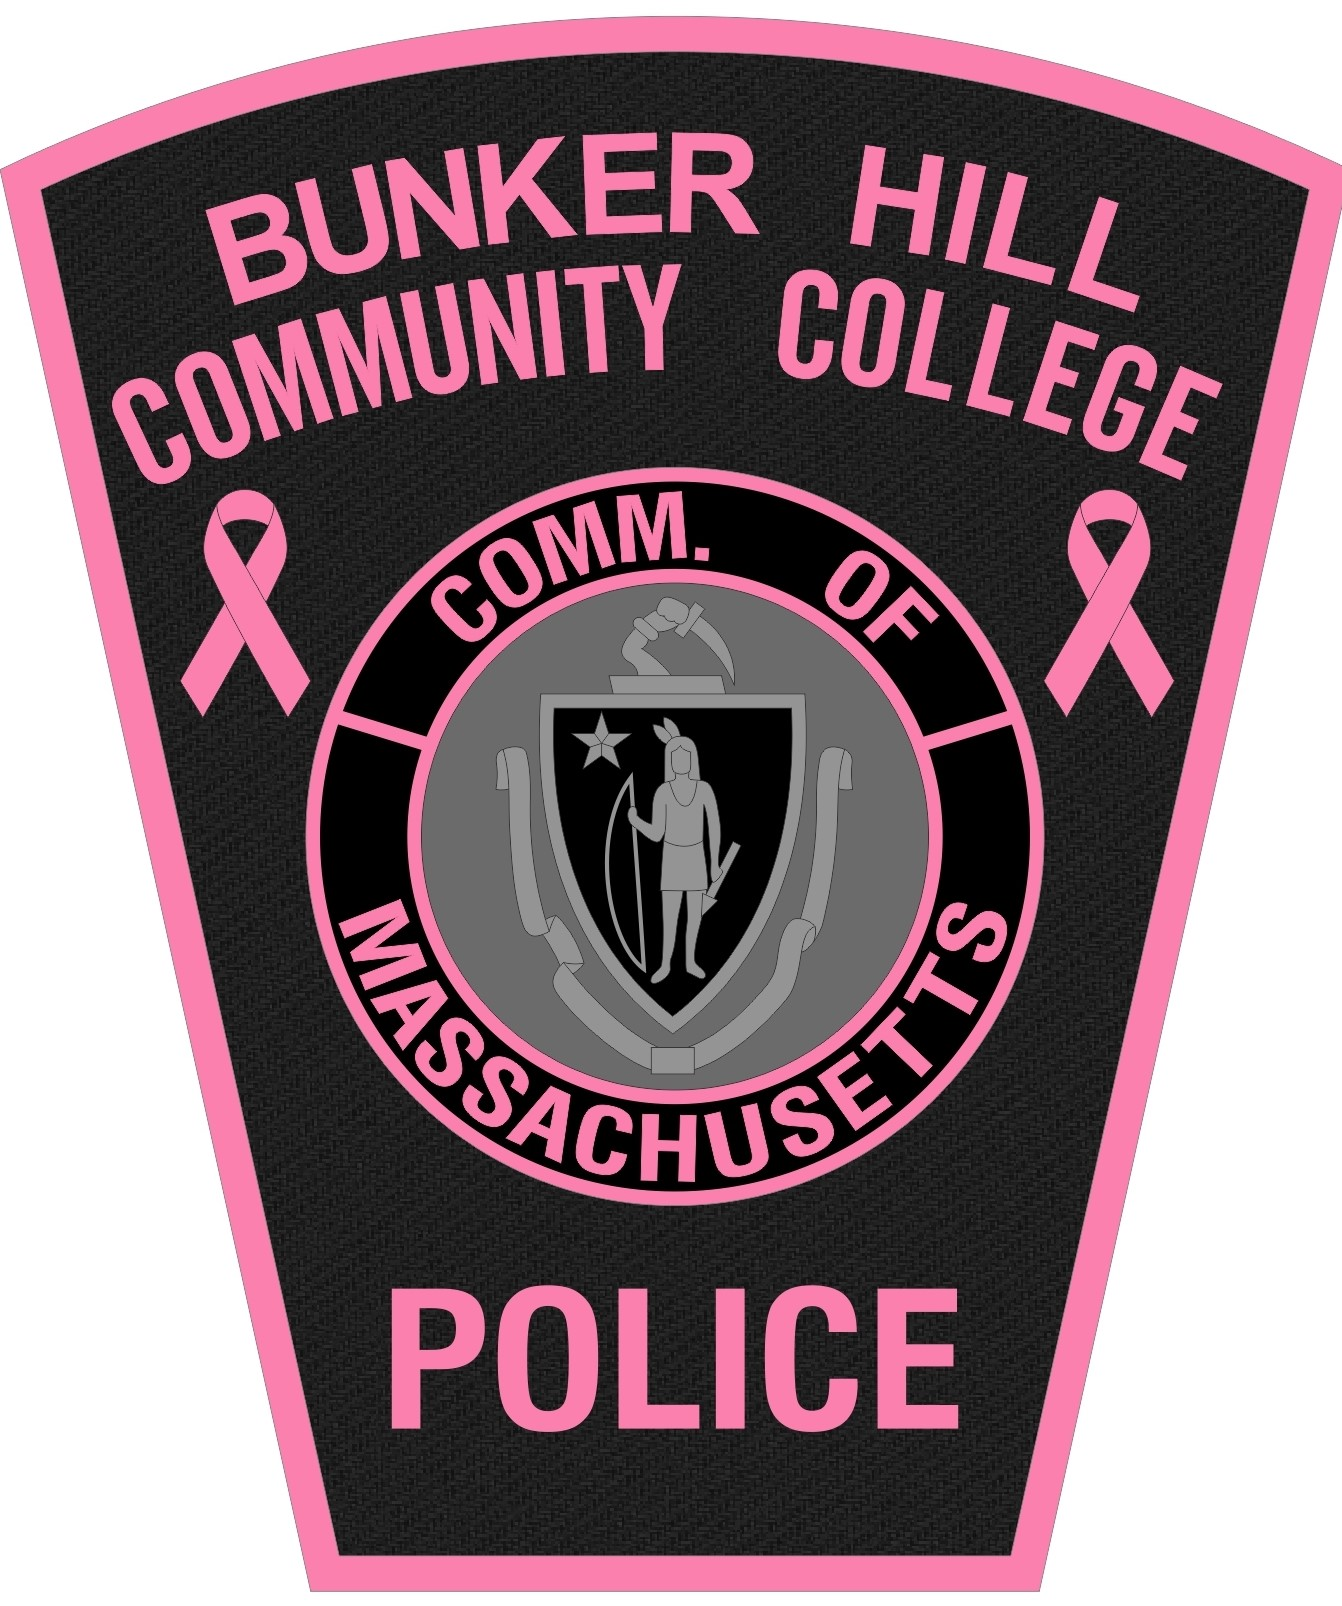 BHCCPD_PinkPatch.jpg